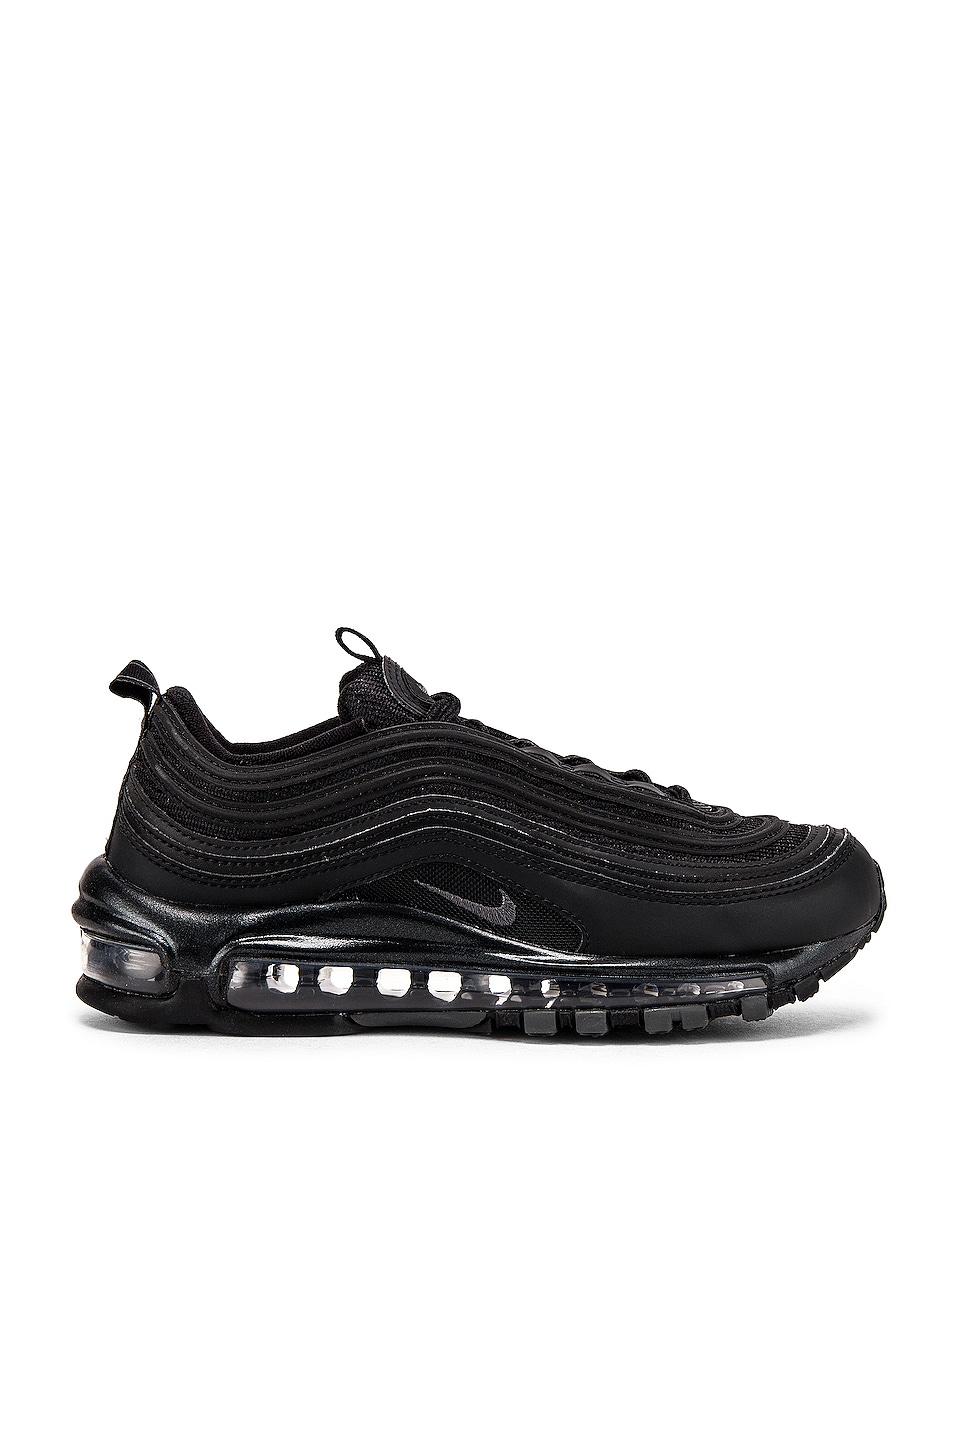 Women's Air Max 97 Sneaker